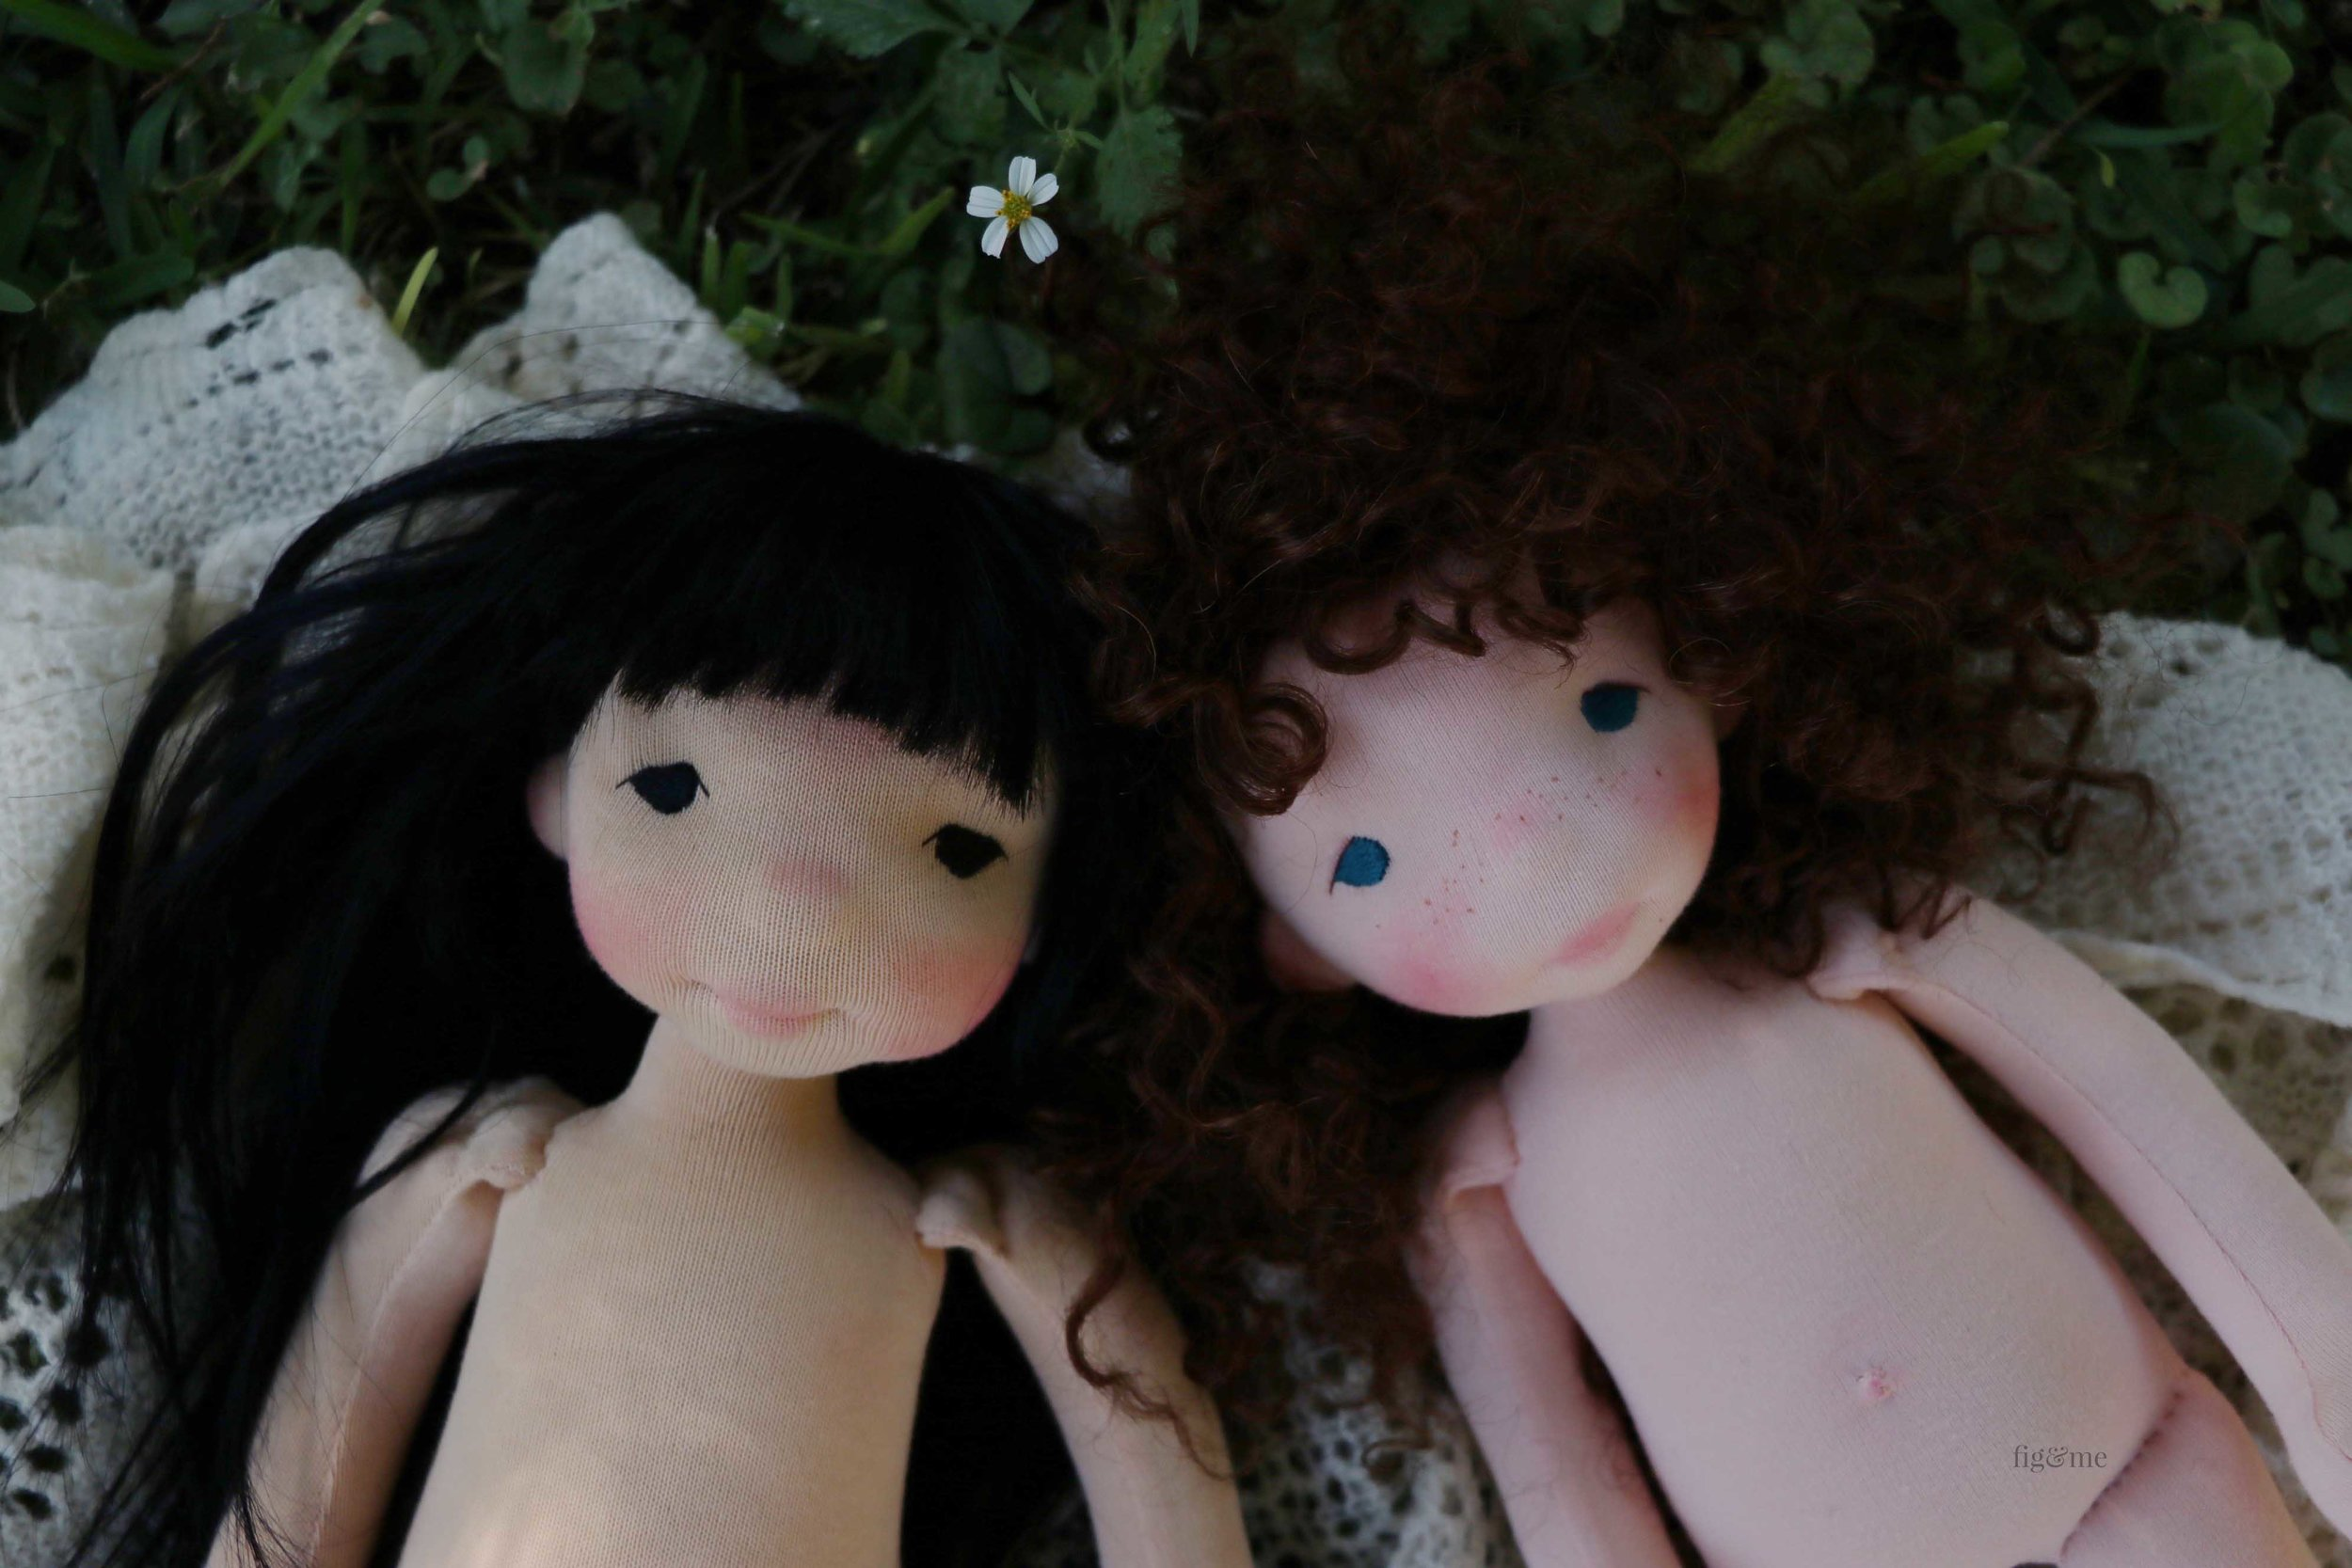 Two contemporary art dolls by Fig and Me.